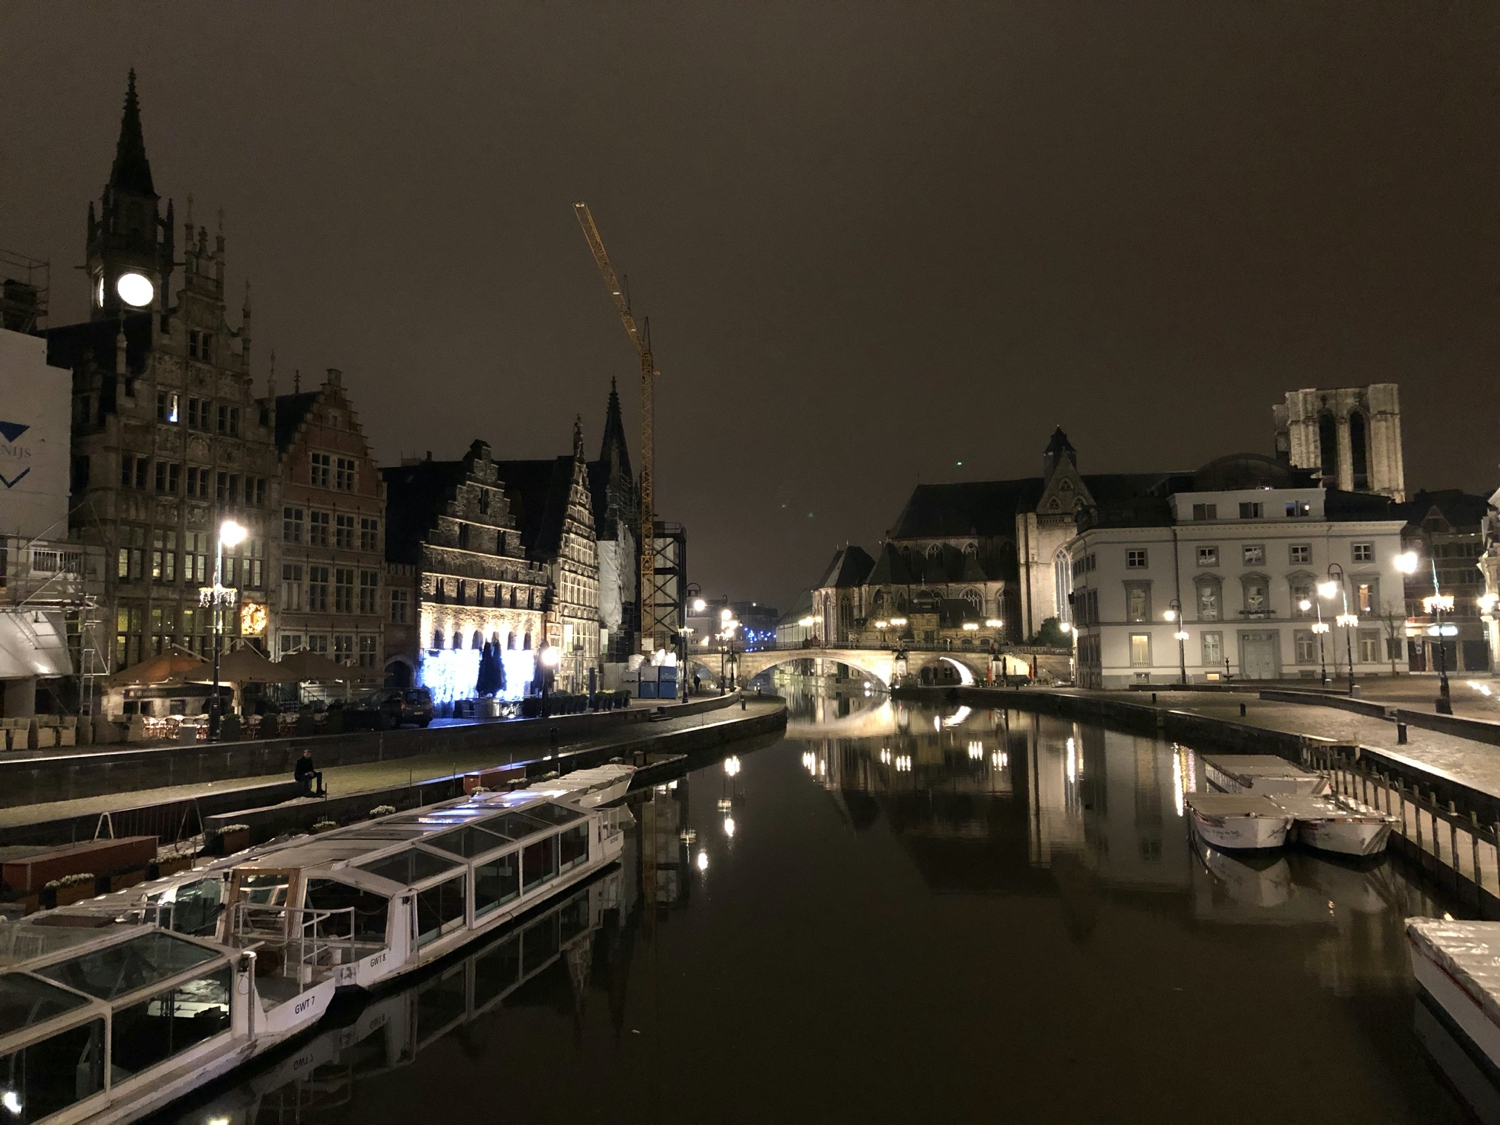 View of old buildings in Ghent over a canal at night.